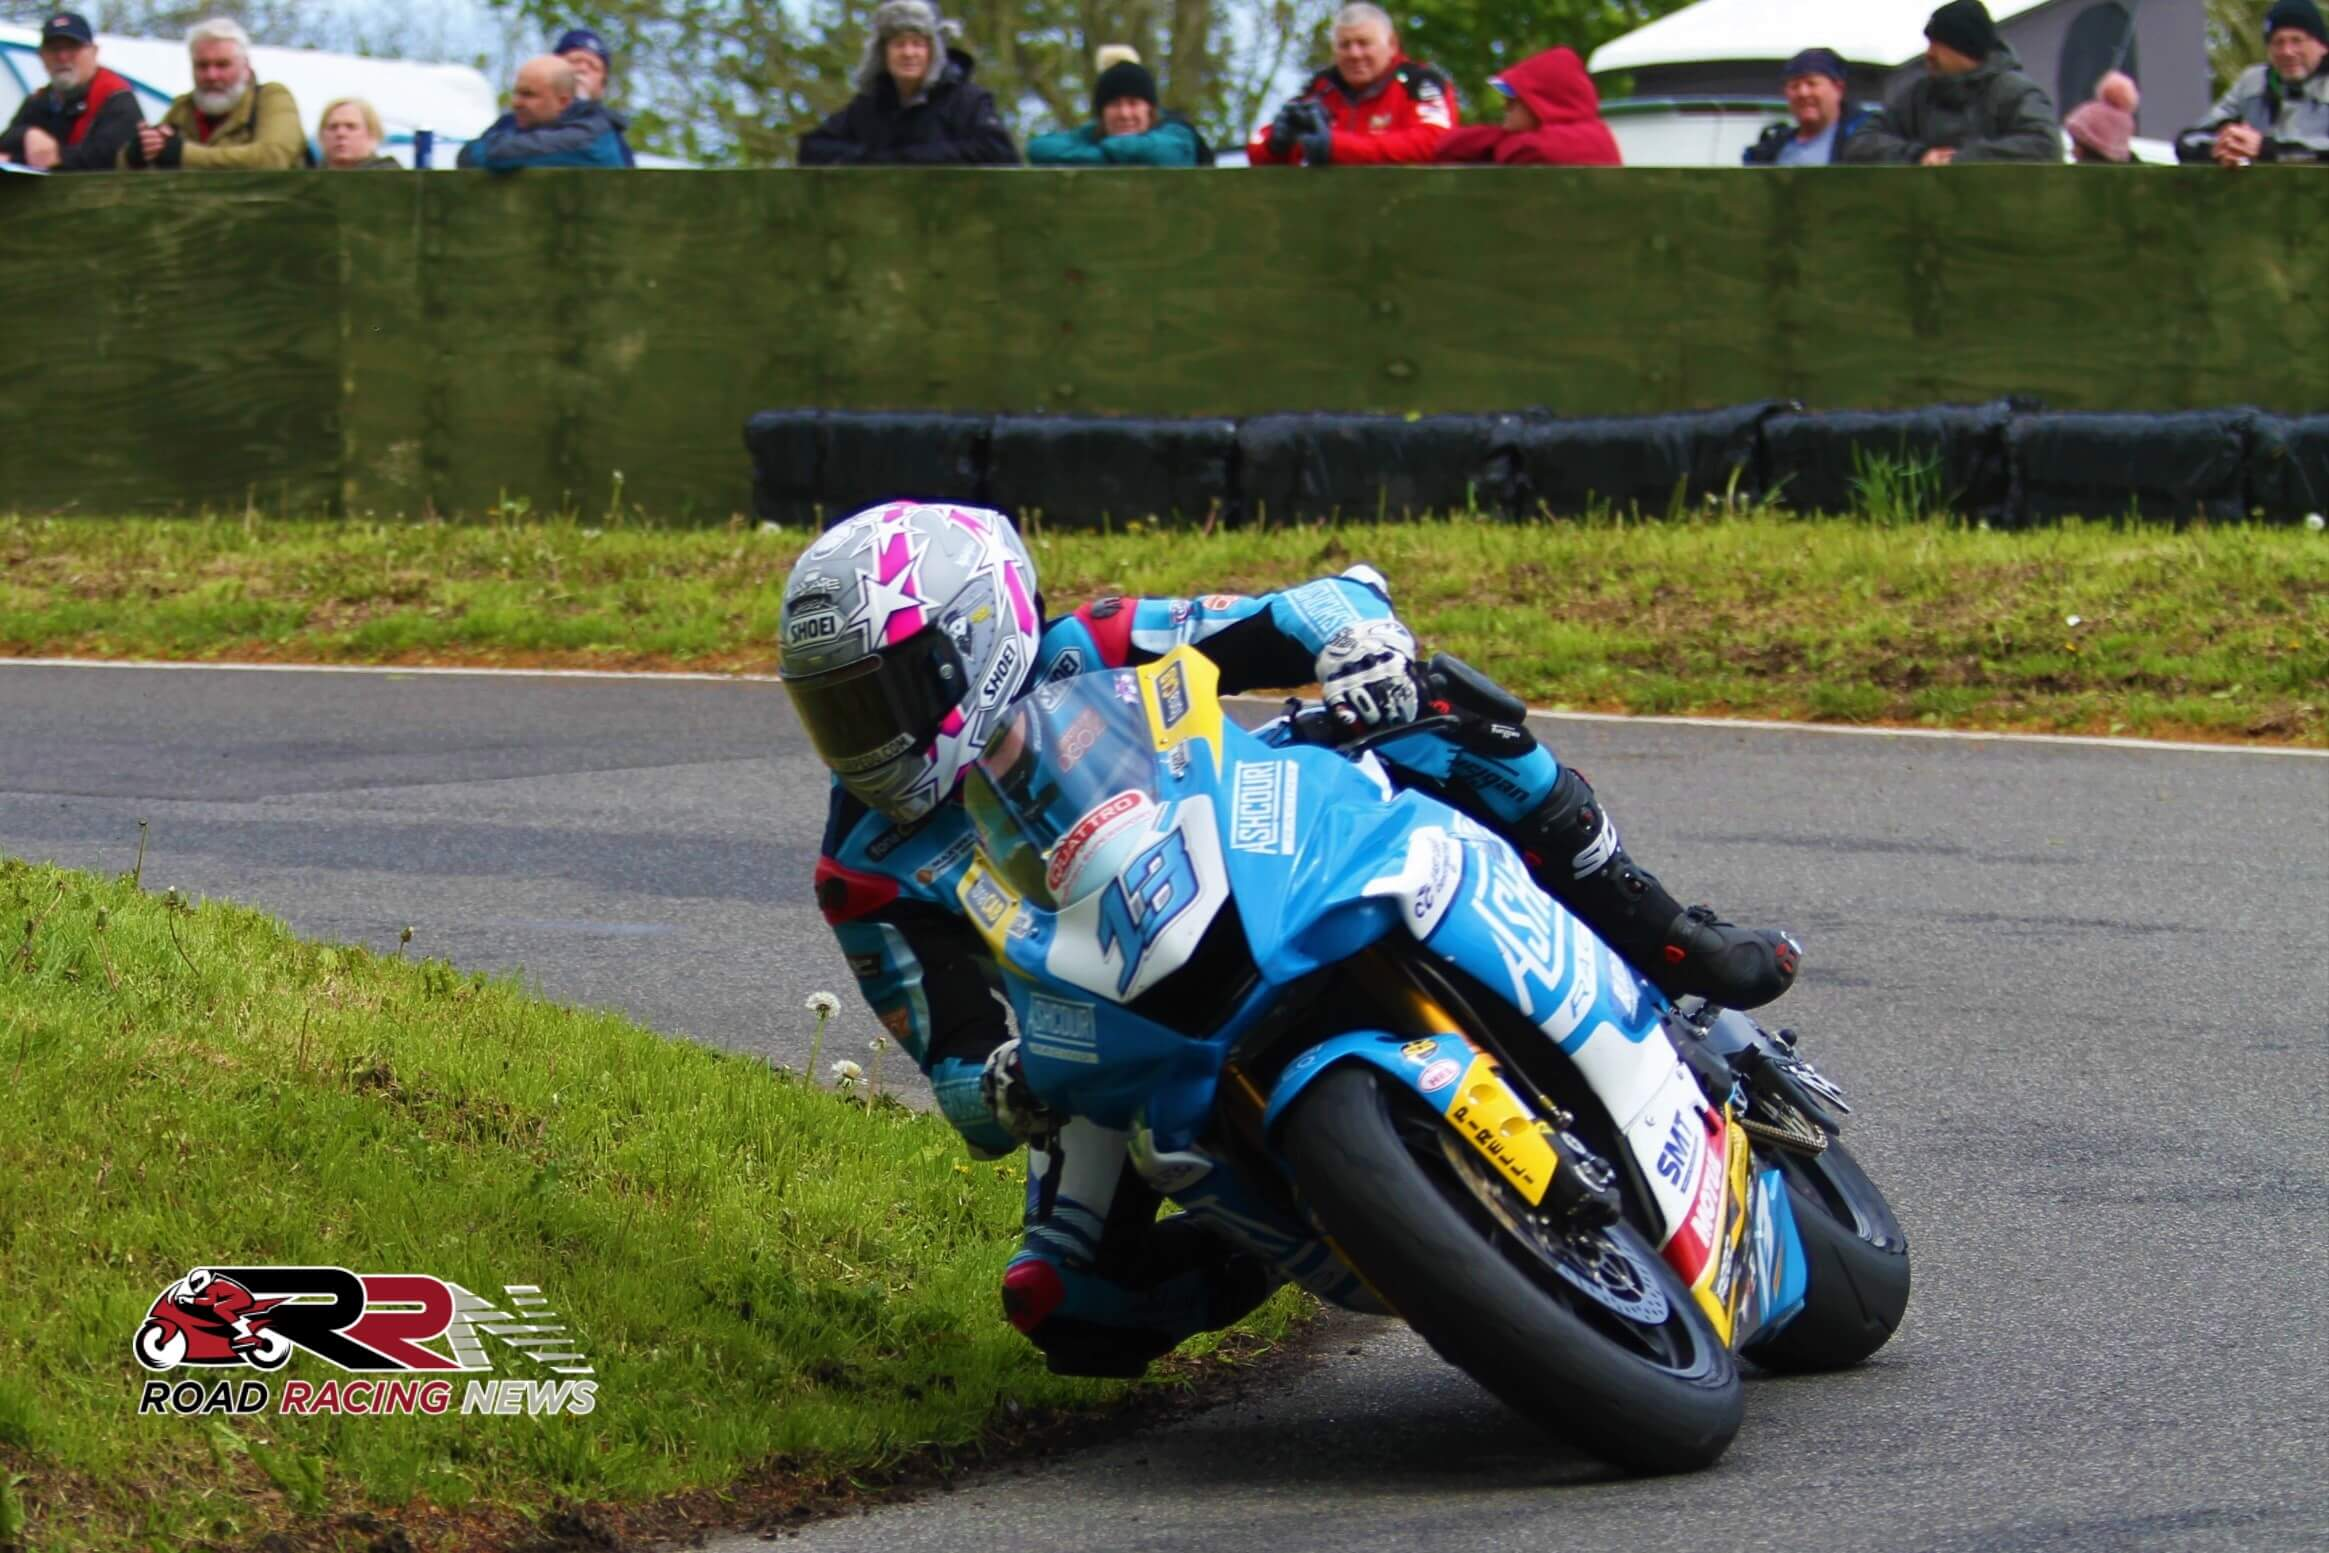 Spring Cup: Supersport Heat Races Review